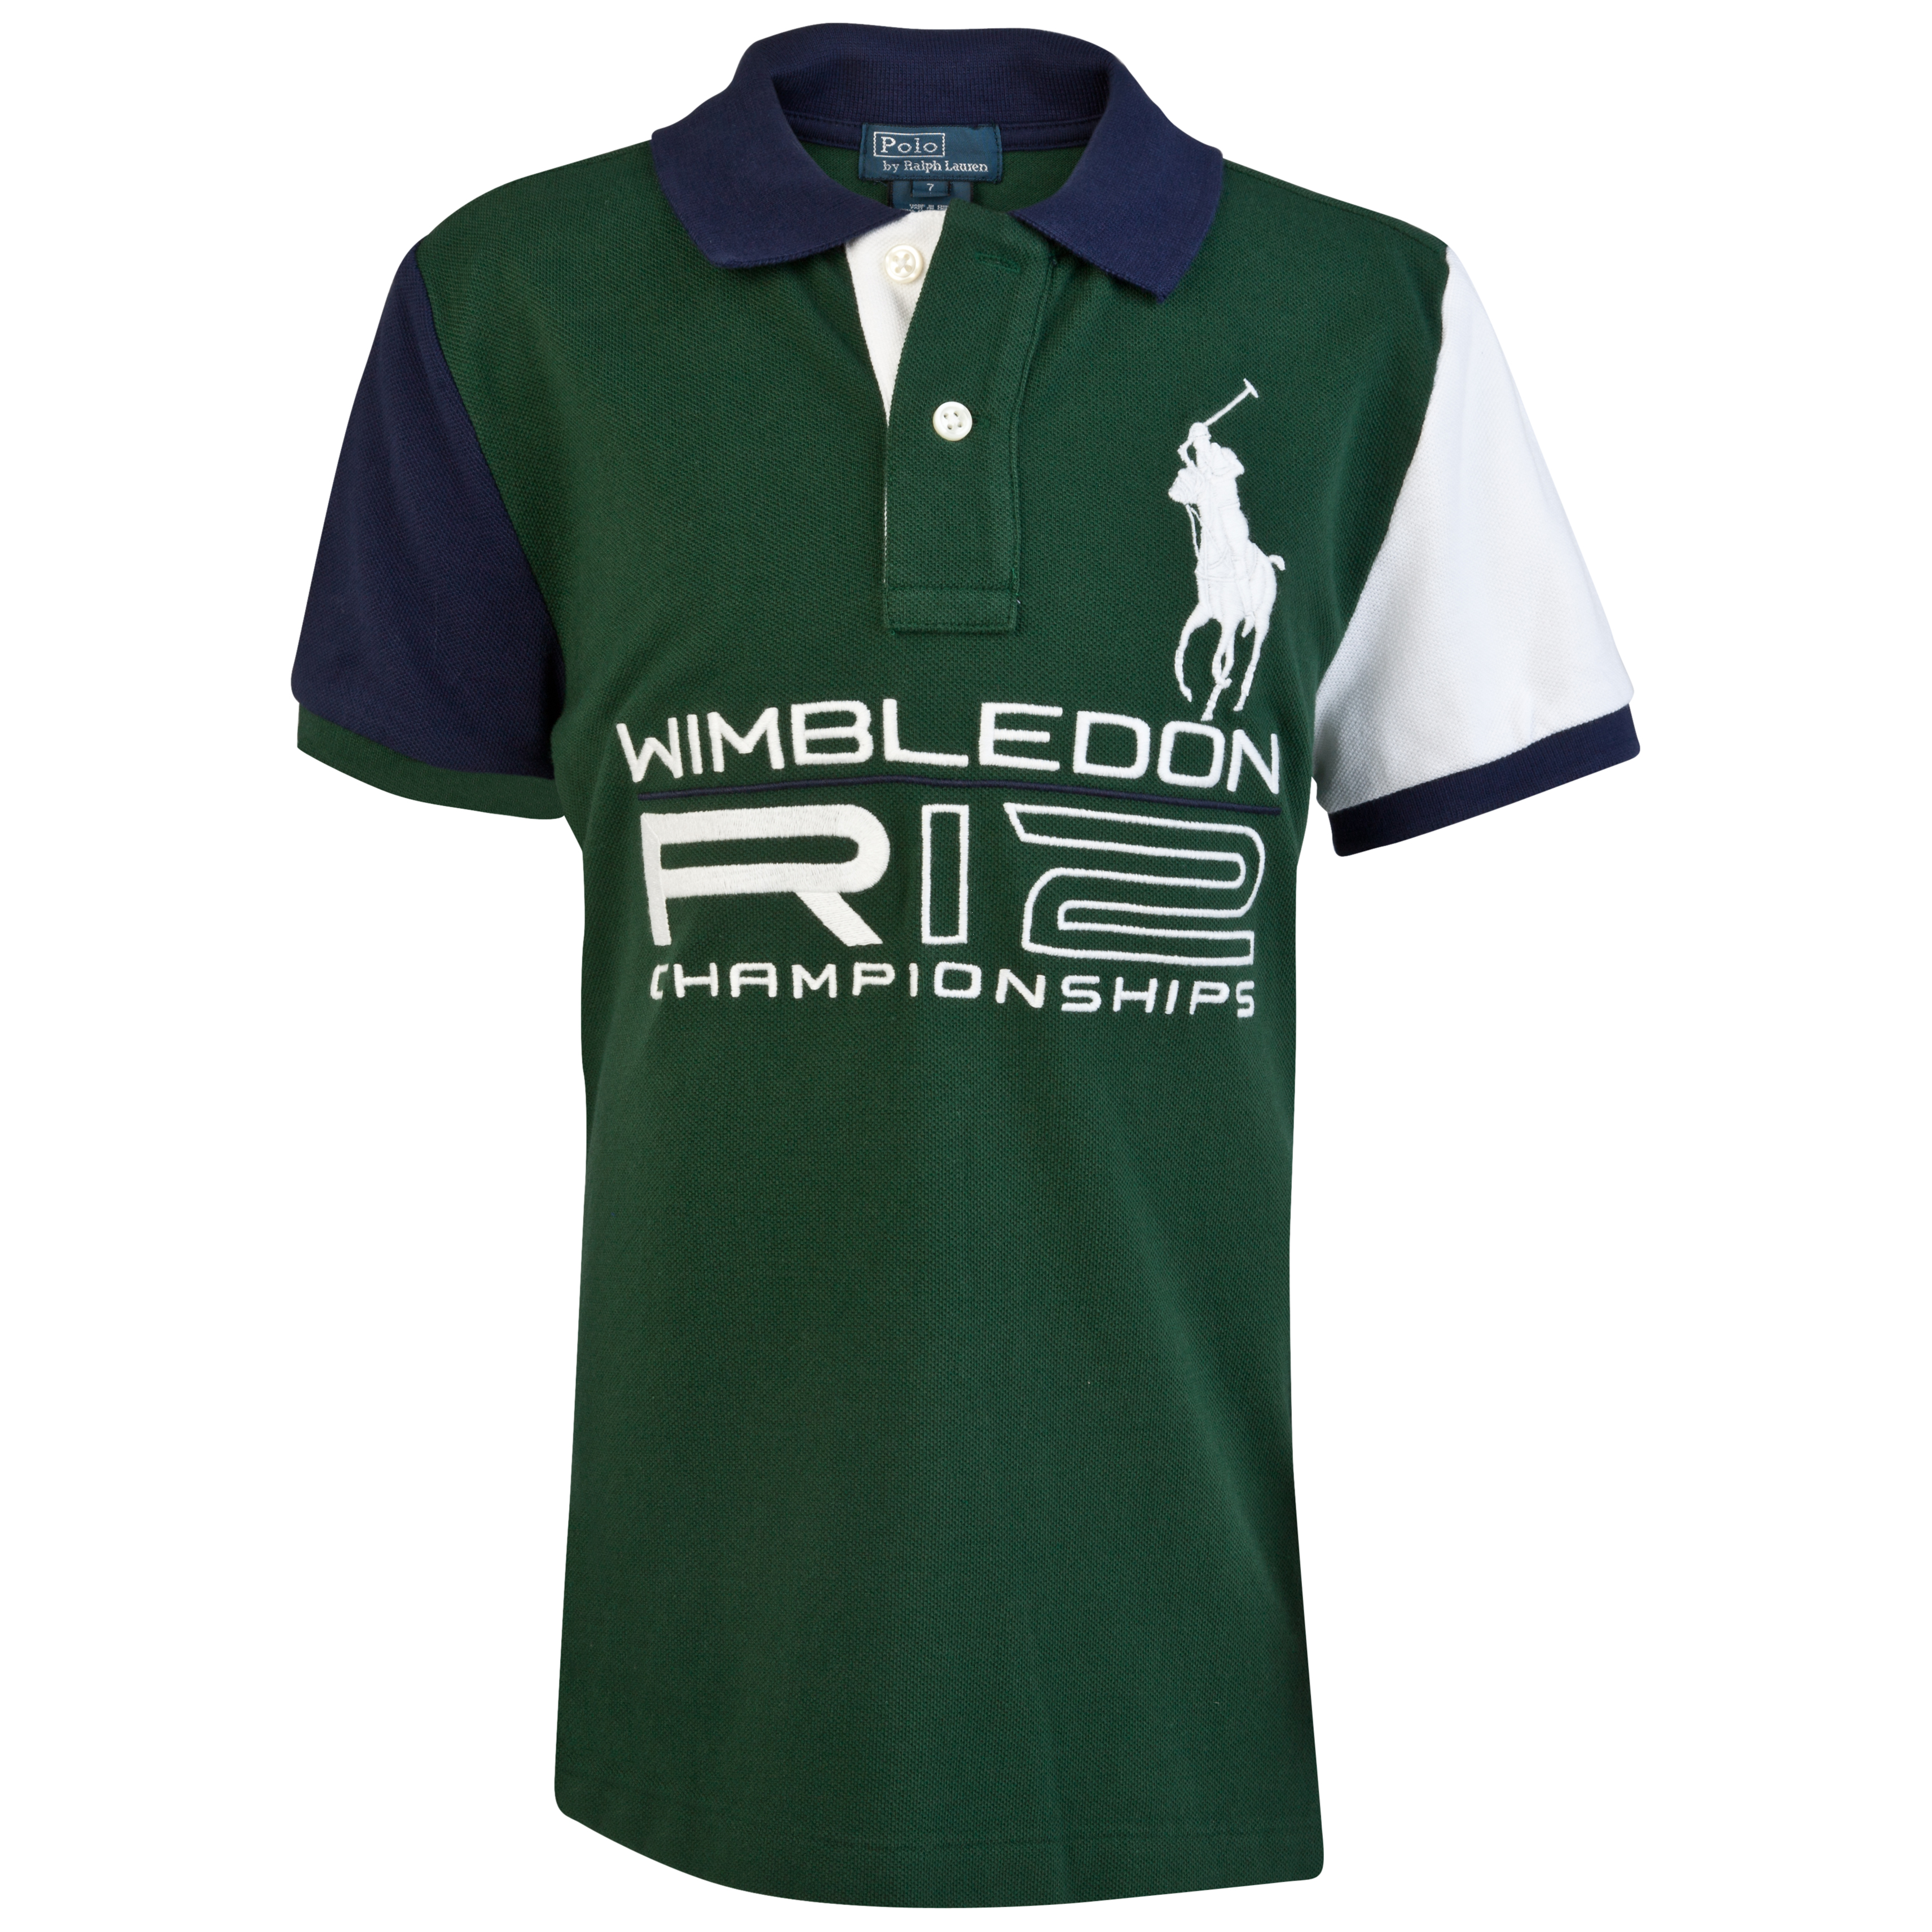 Polo Ralph Lauren Wimbledon Big PP Mesh Polo - Northwest Pine - Infant Girls